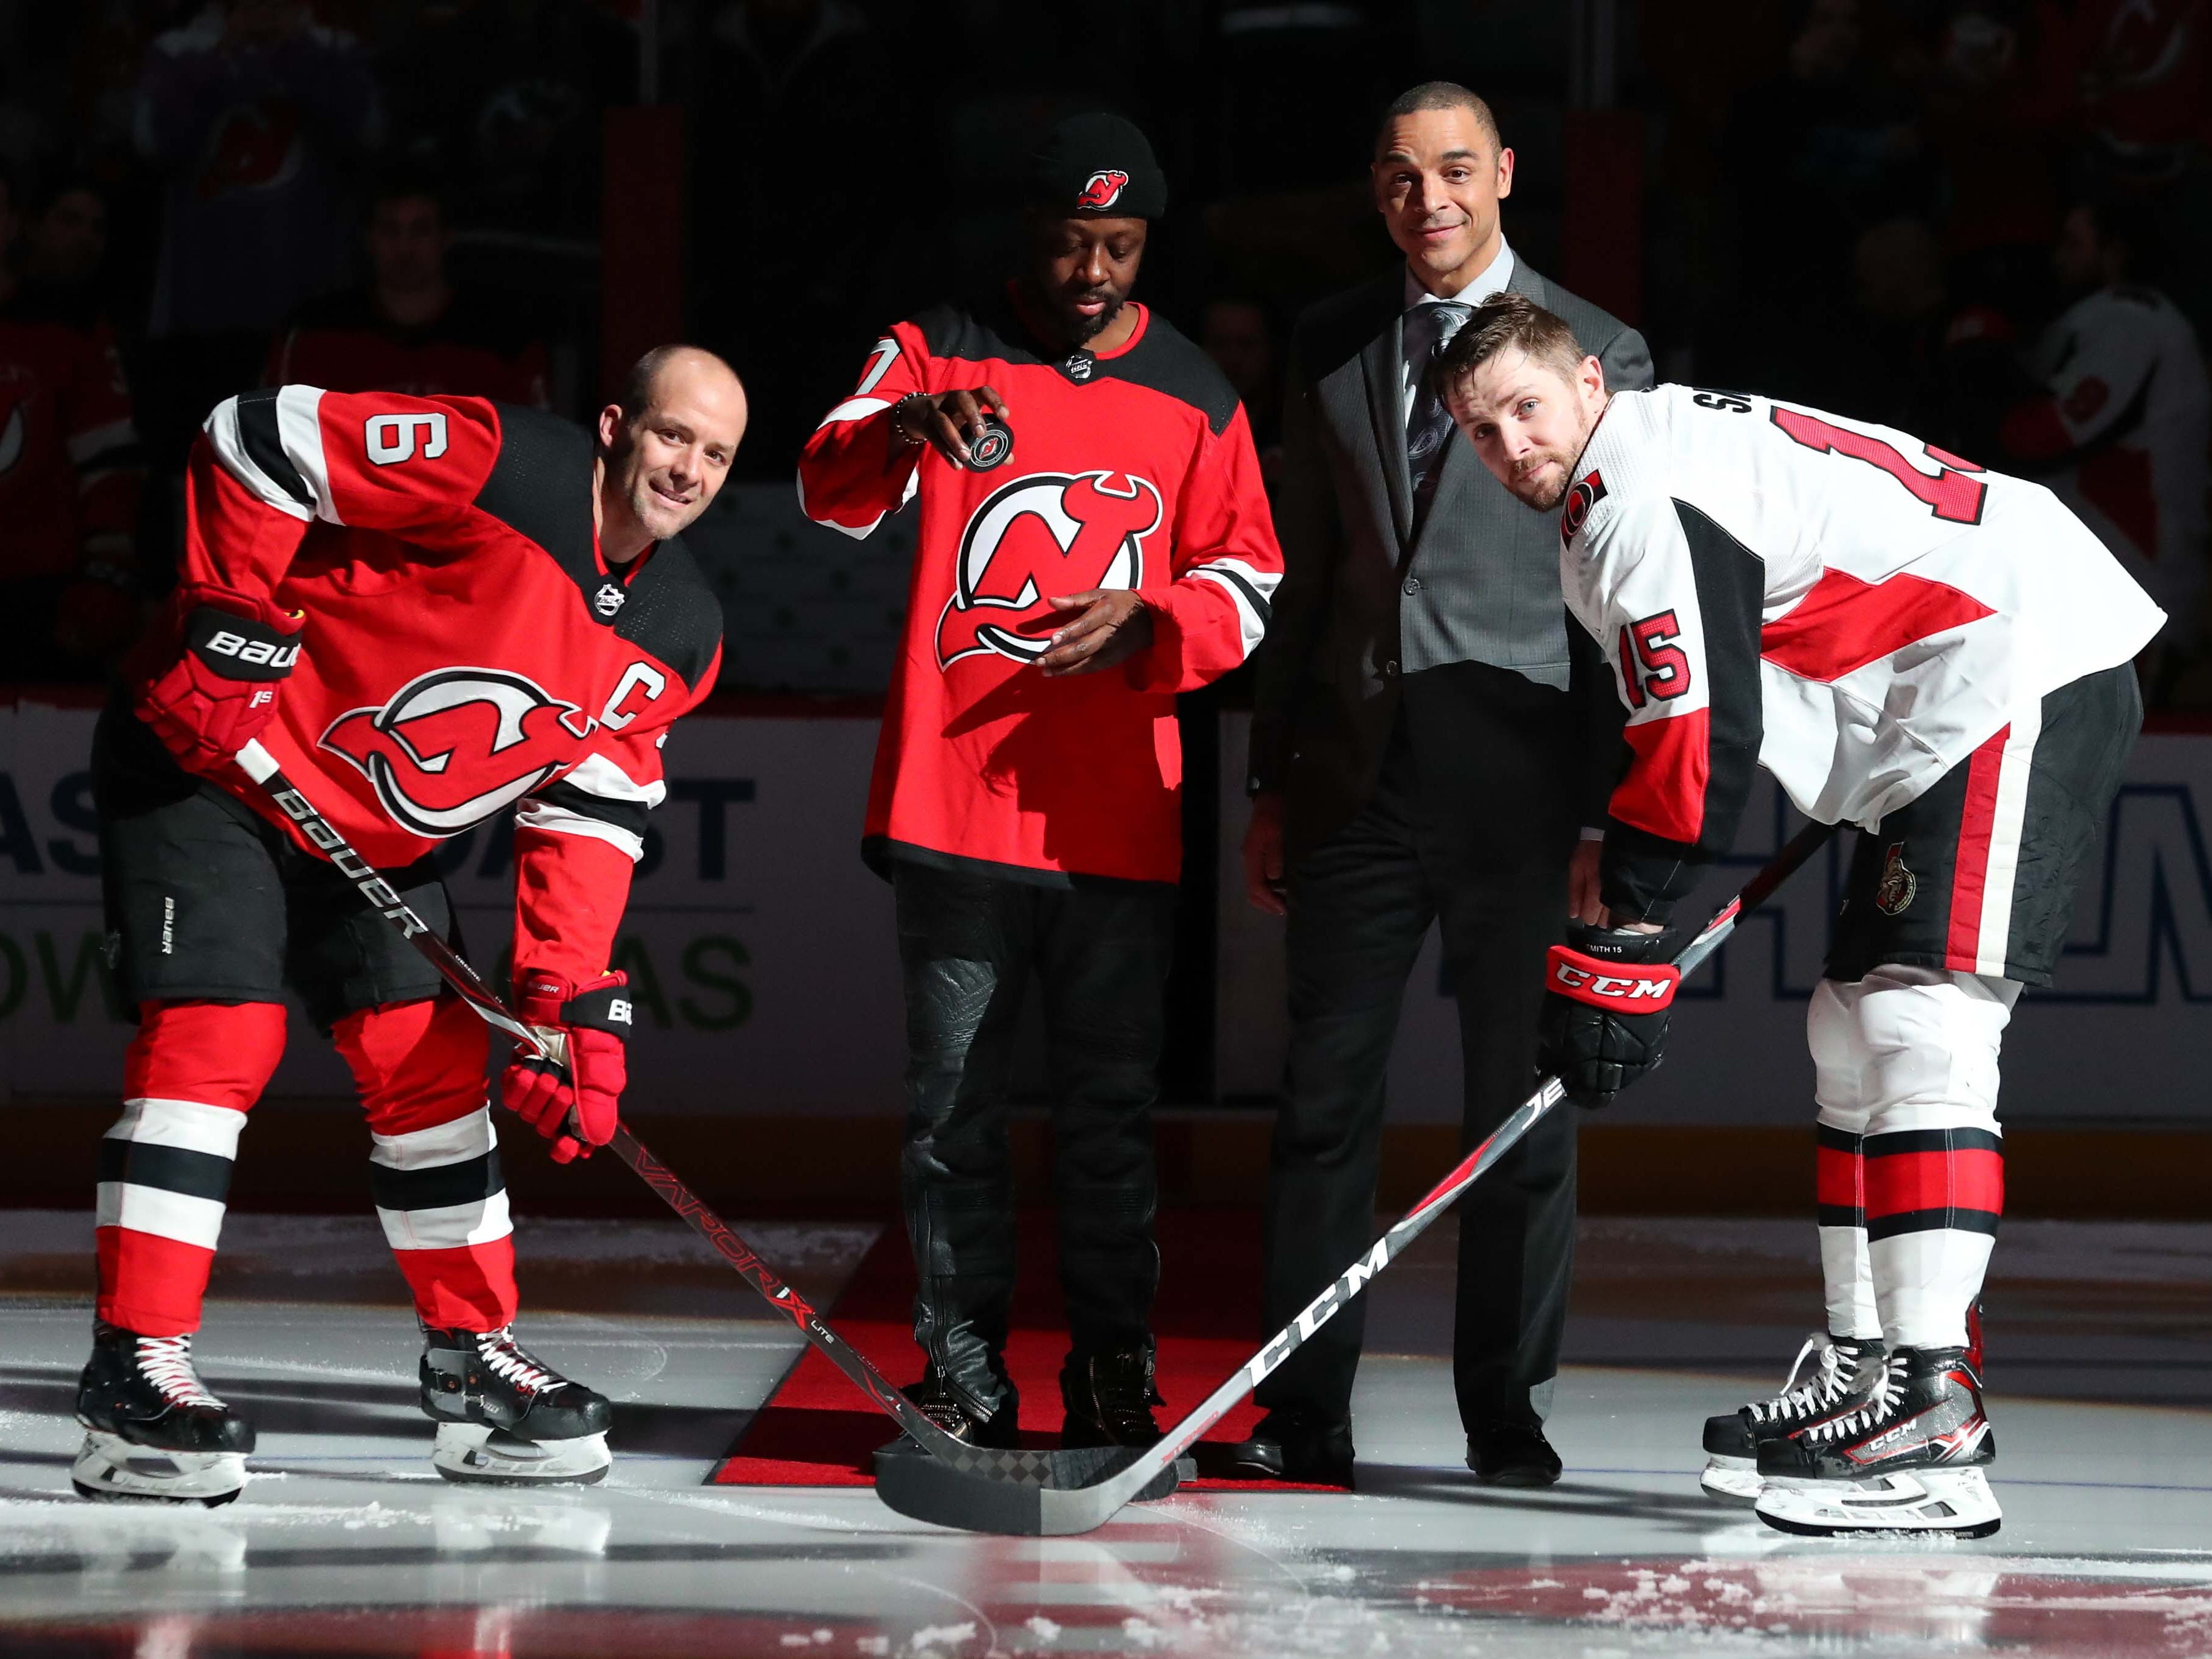 Feb 21, 2019; Newark, NJ, USA; Wyclef Jean, best known for performing in the band the Fugees, drops the first puck between New Jersey Devils defenseman Andy Greene (6) and Ottawa Senators left wing Zack Smith (15) at Prudential Center.